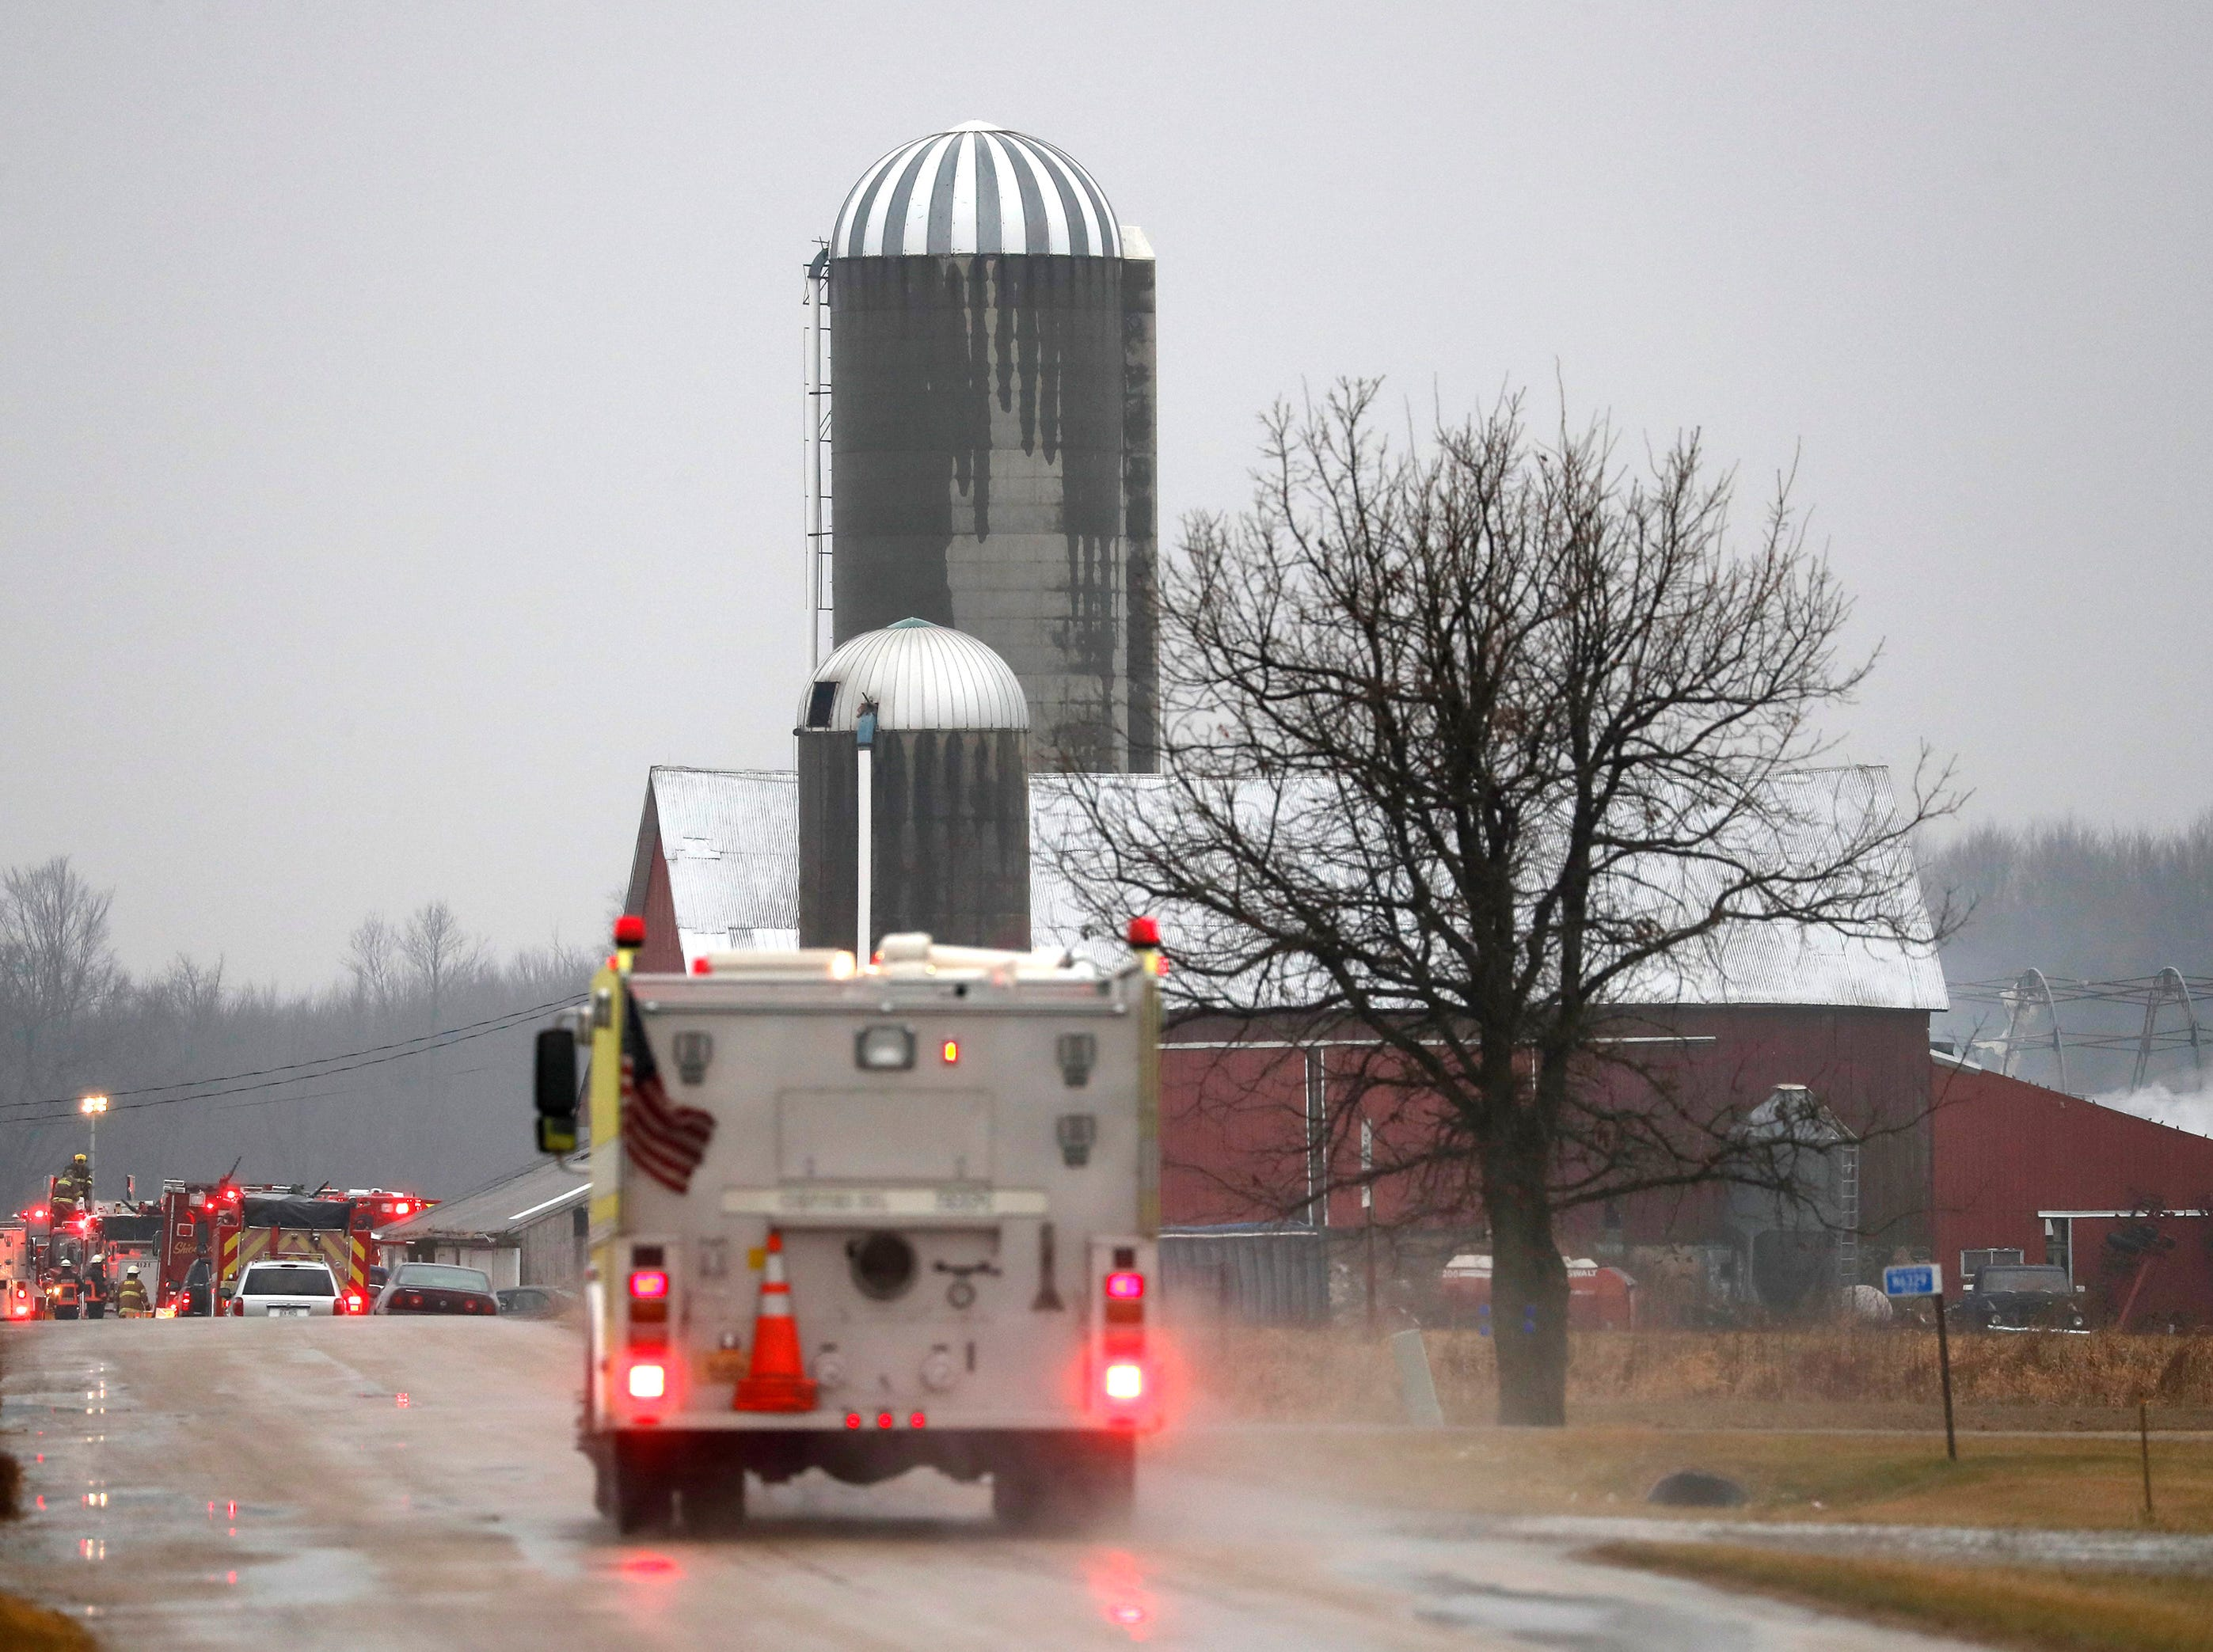 A firetruck heads to the scene of a fire on Wick Road Thursday, Dec. 27, 2018, Black Creek, Wis.